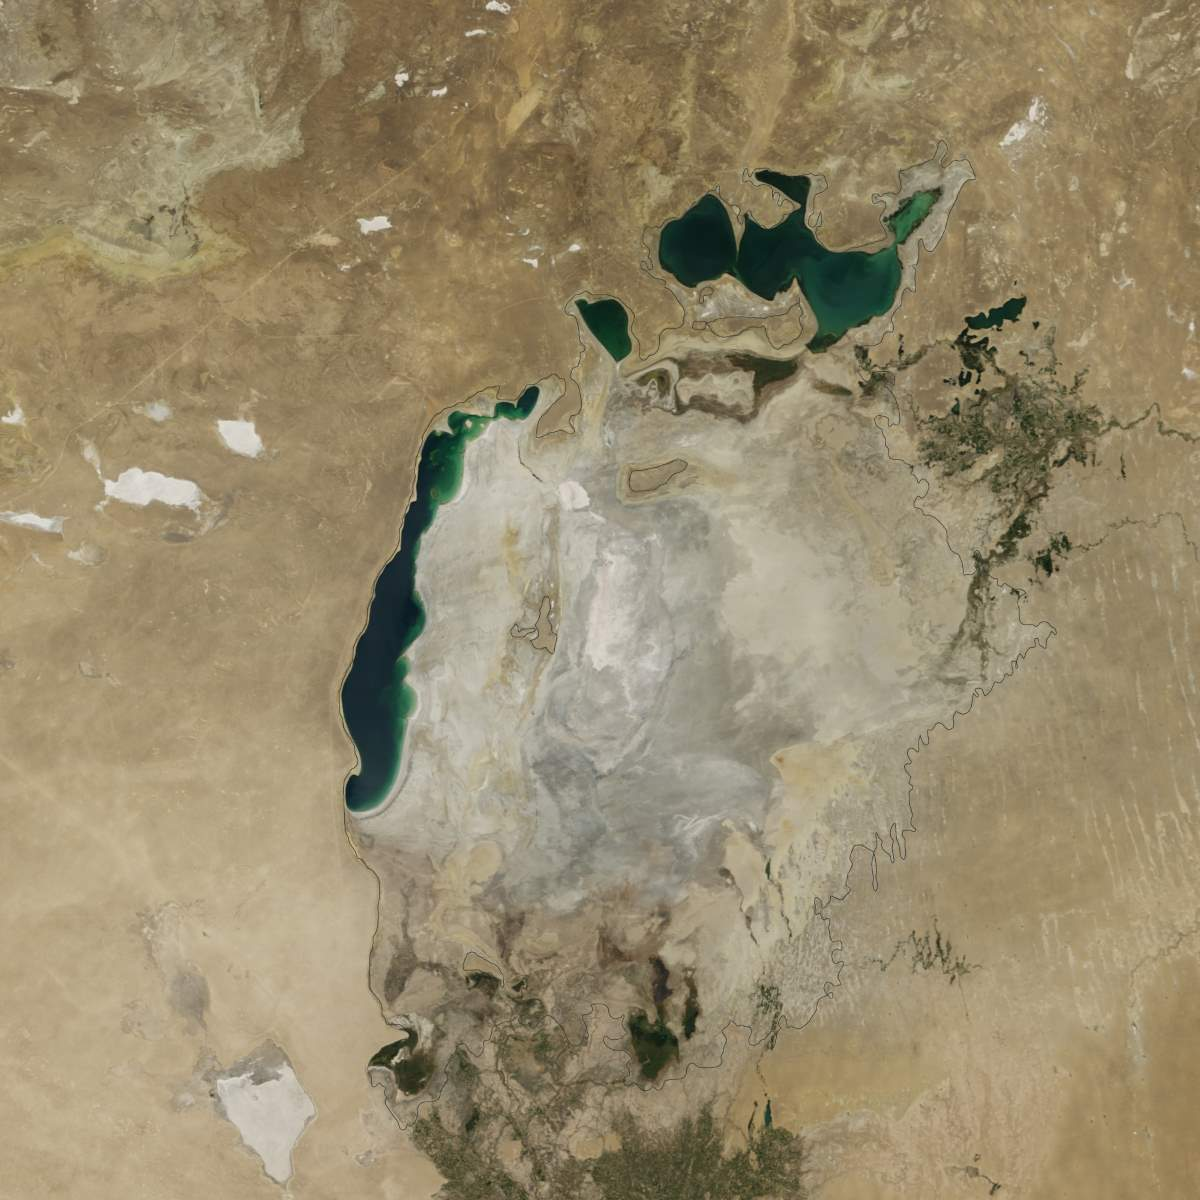 Changing Earth: Aral Sea, August 19, 2014